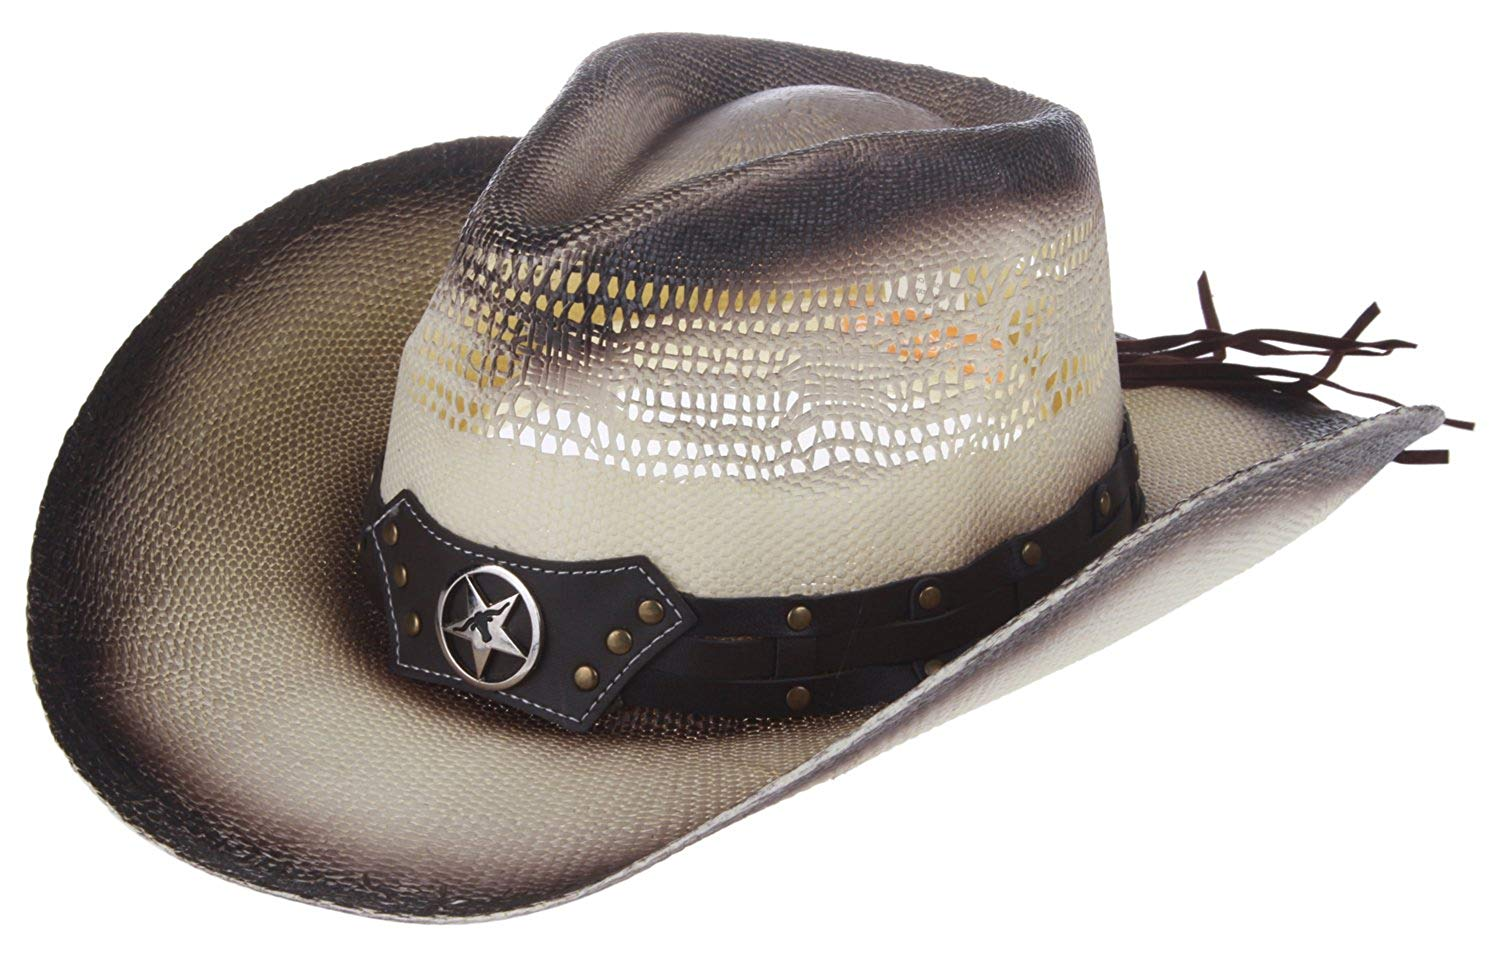 38ace435e08021 Buy Panama Jack Womens Maize Outback Cowboy Beach Hat with Shells in ...